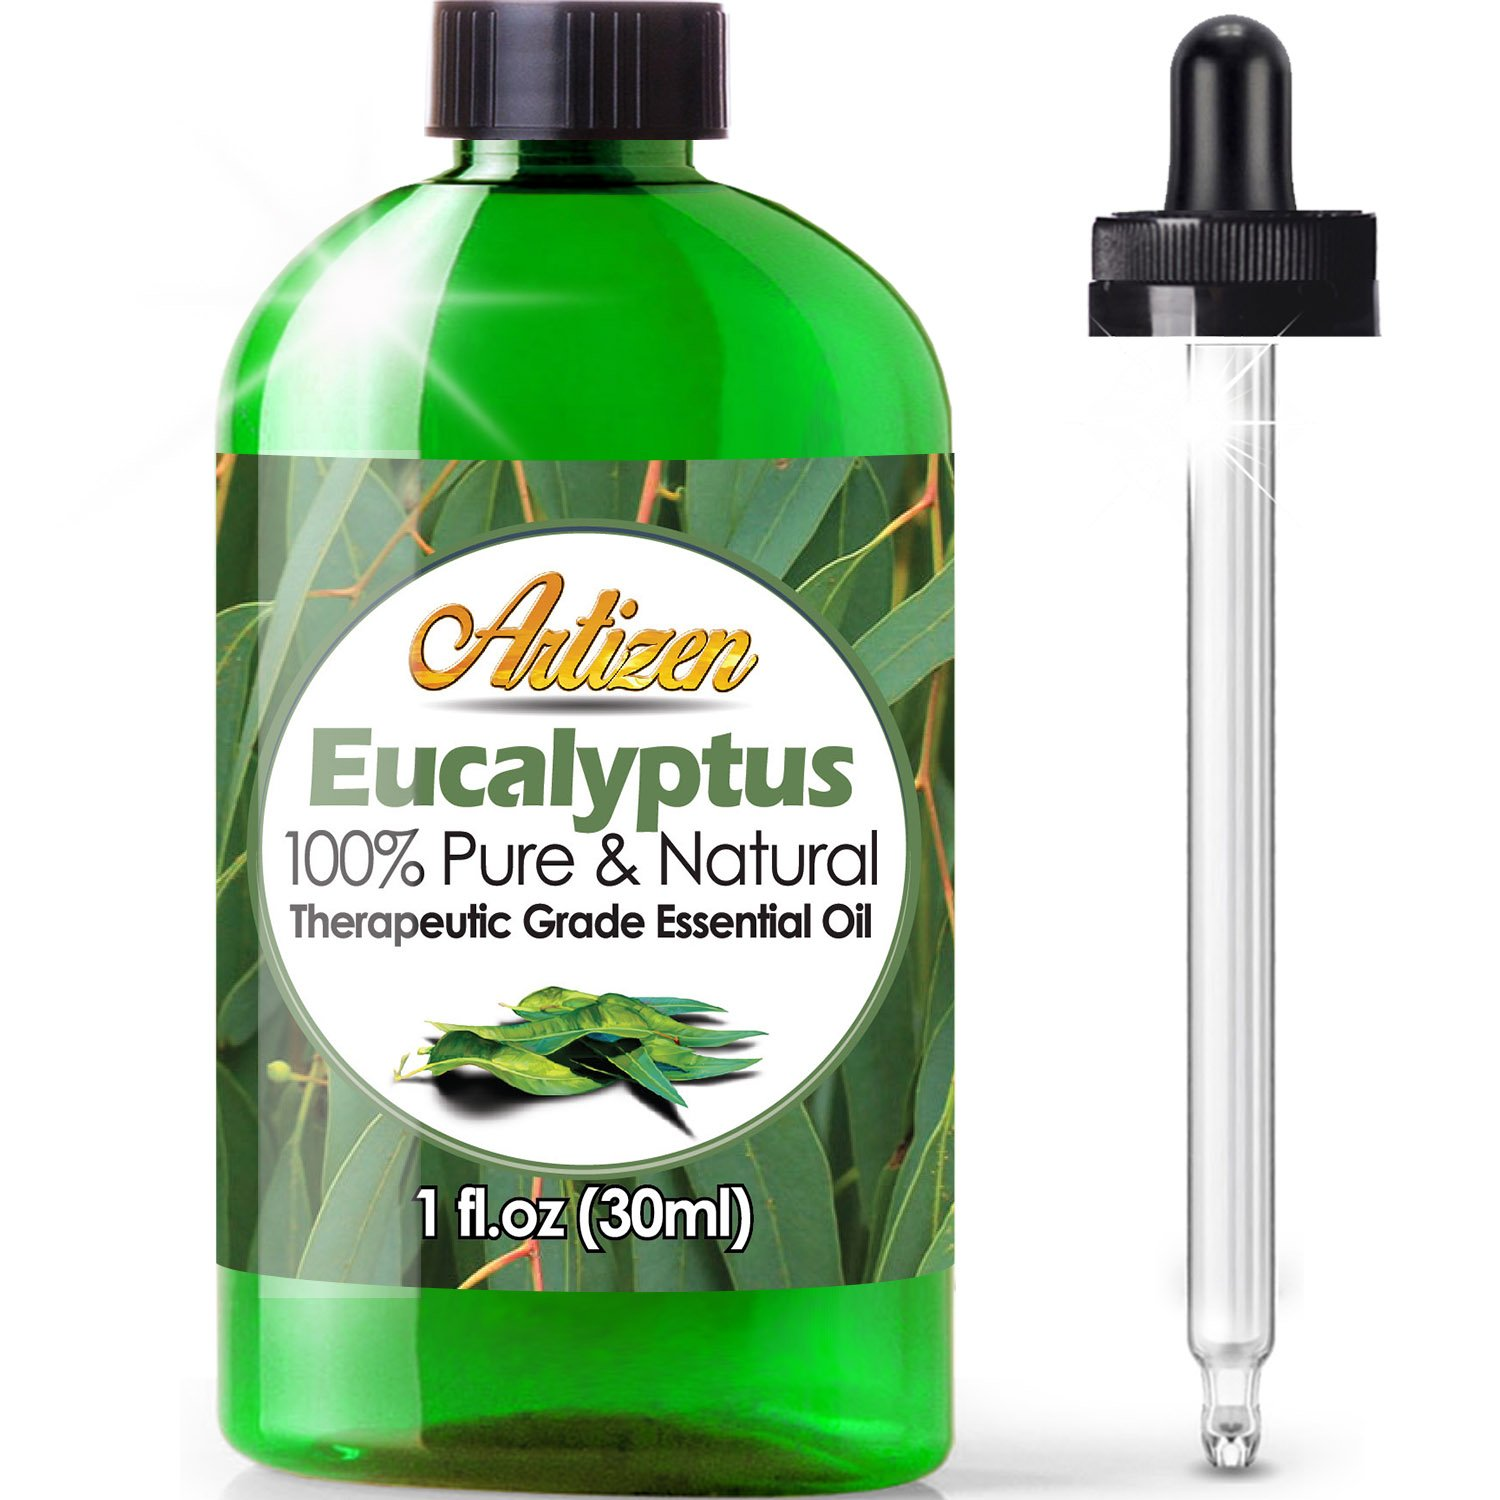 Artizen Eucalyptus Essential Oil (100% Pure & Natural - UNDILUTED) Therapeutic Grade - Huge 1oz Bottle - Perfect for Aromatherapy, Relaxation, Skin Th